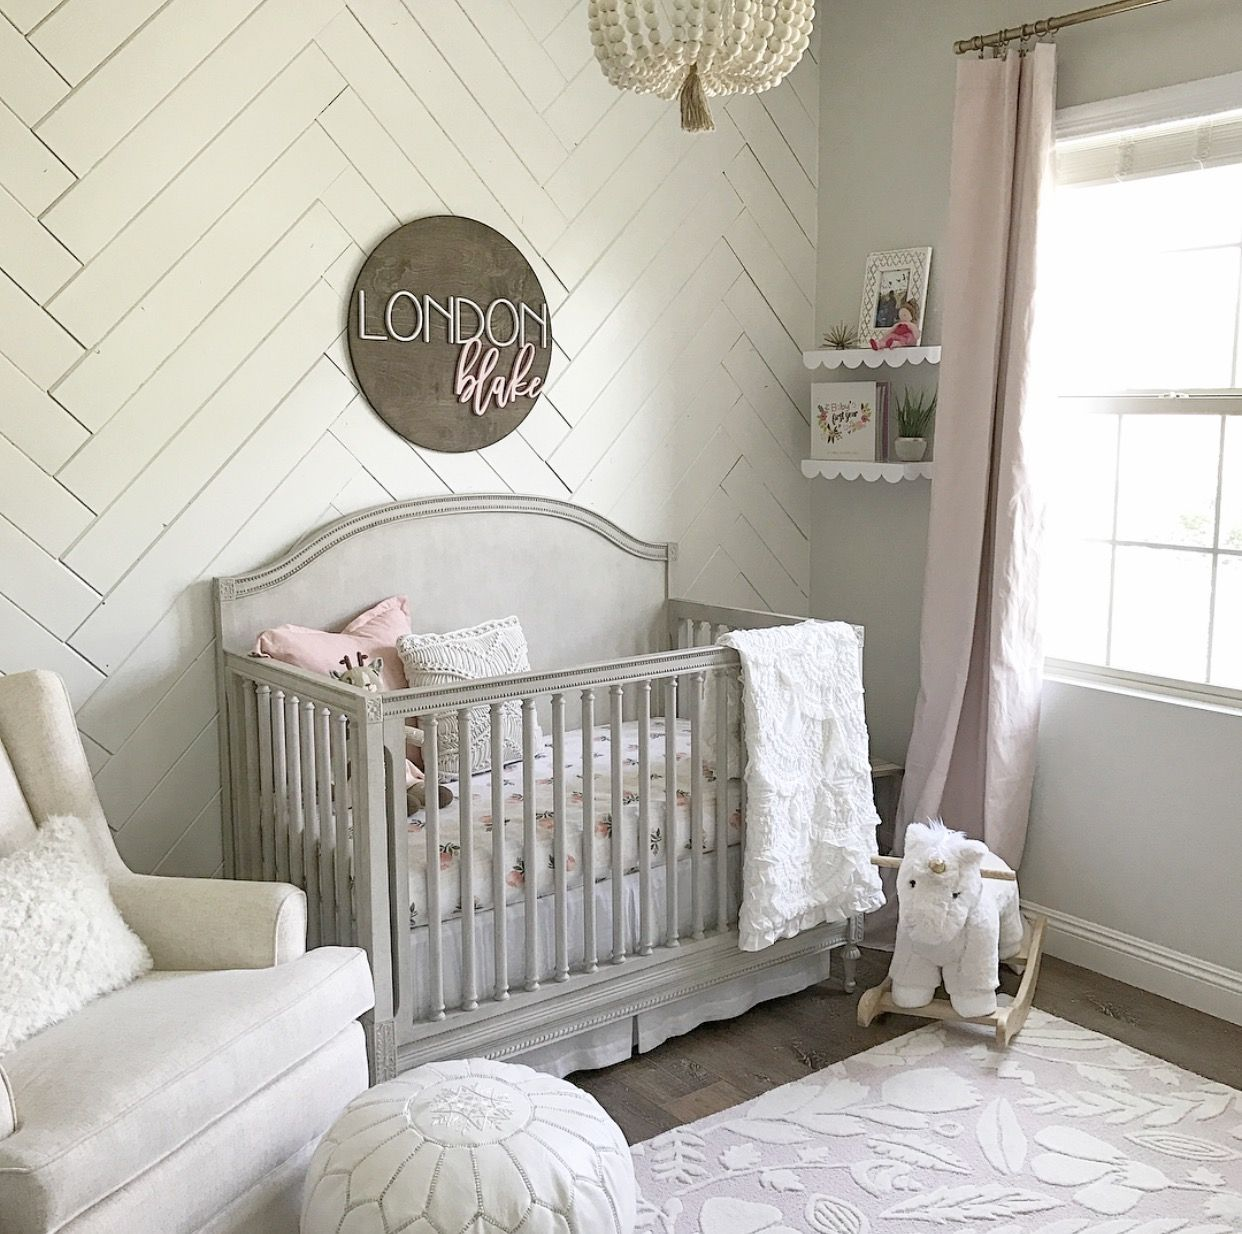 Sweet Baby Girl Nursery Baby room decor, Girl room, Baby